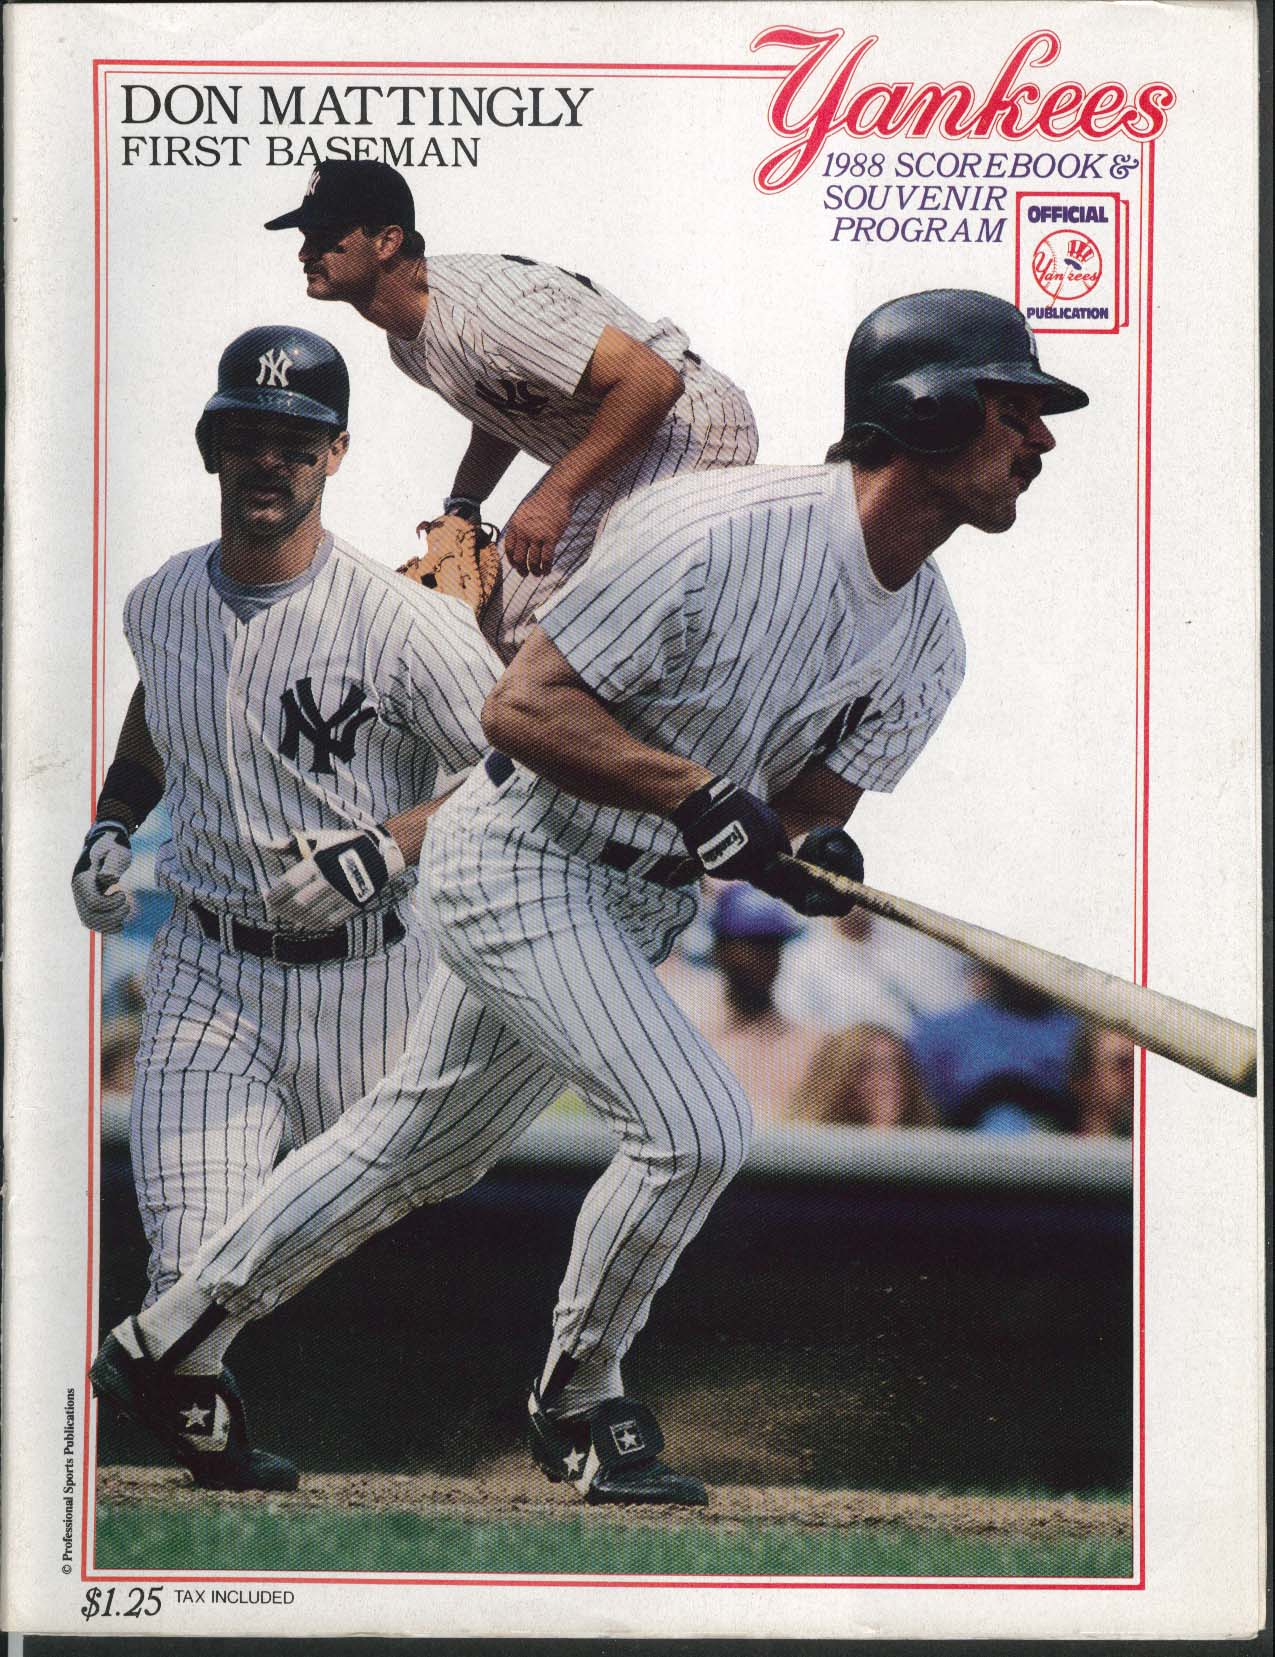 New York Yankees Official 1988 Scorebook Souvenir Program Kansas City Royals